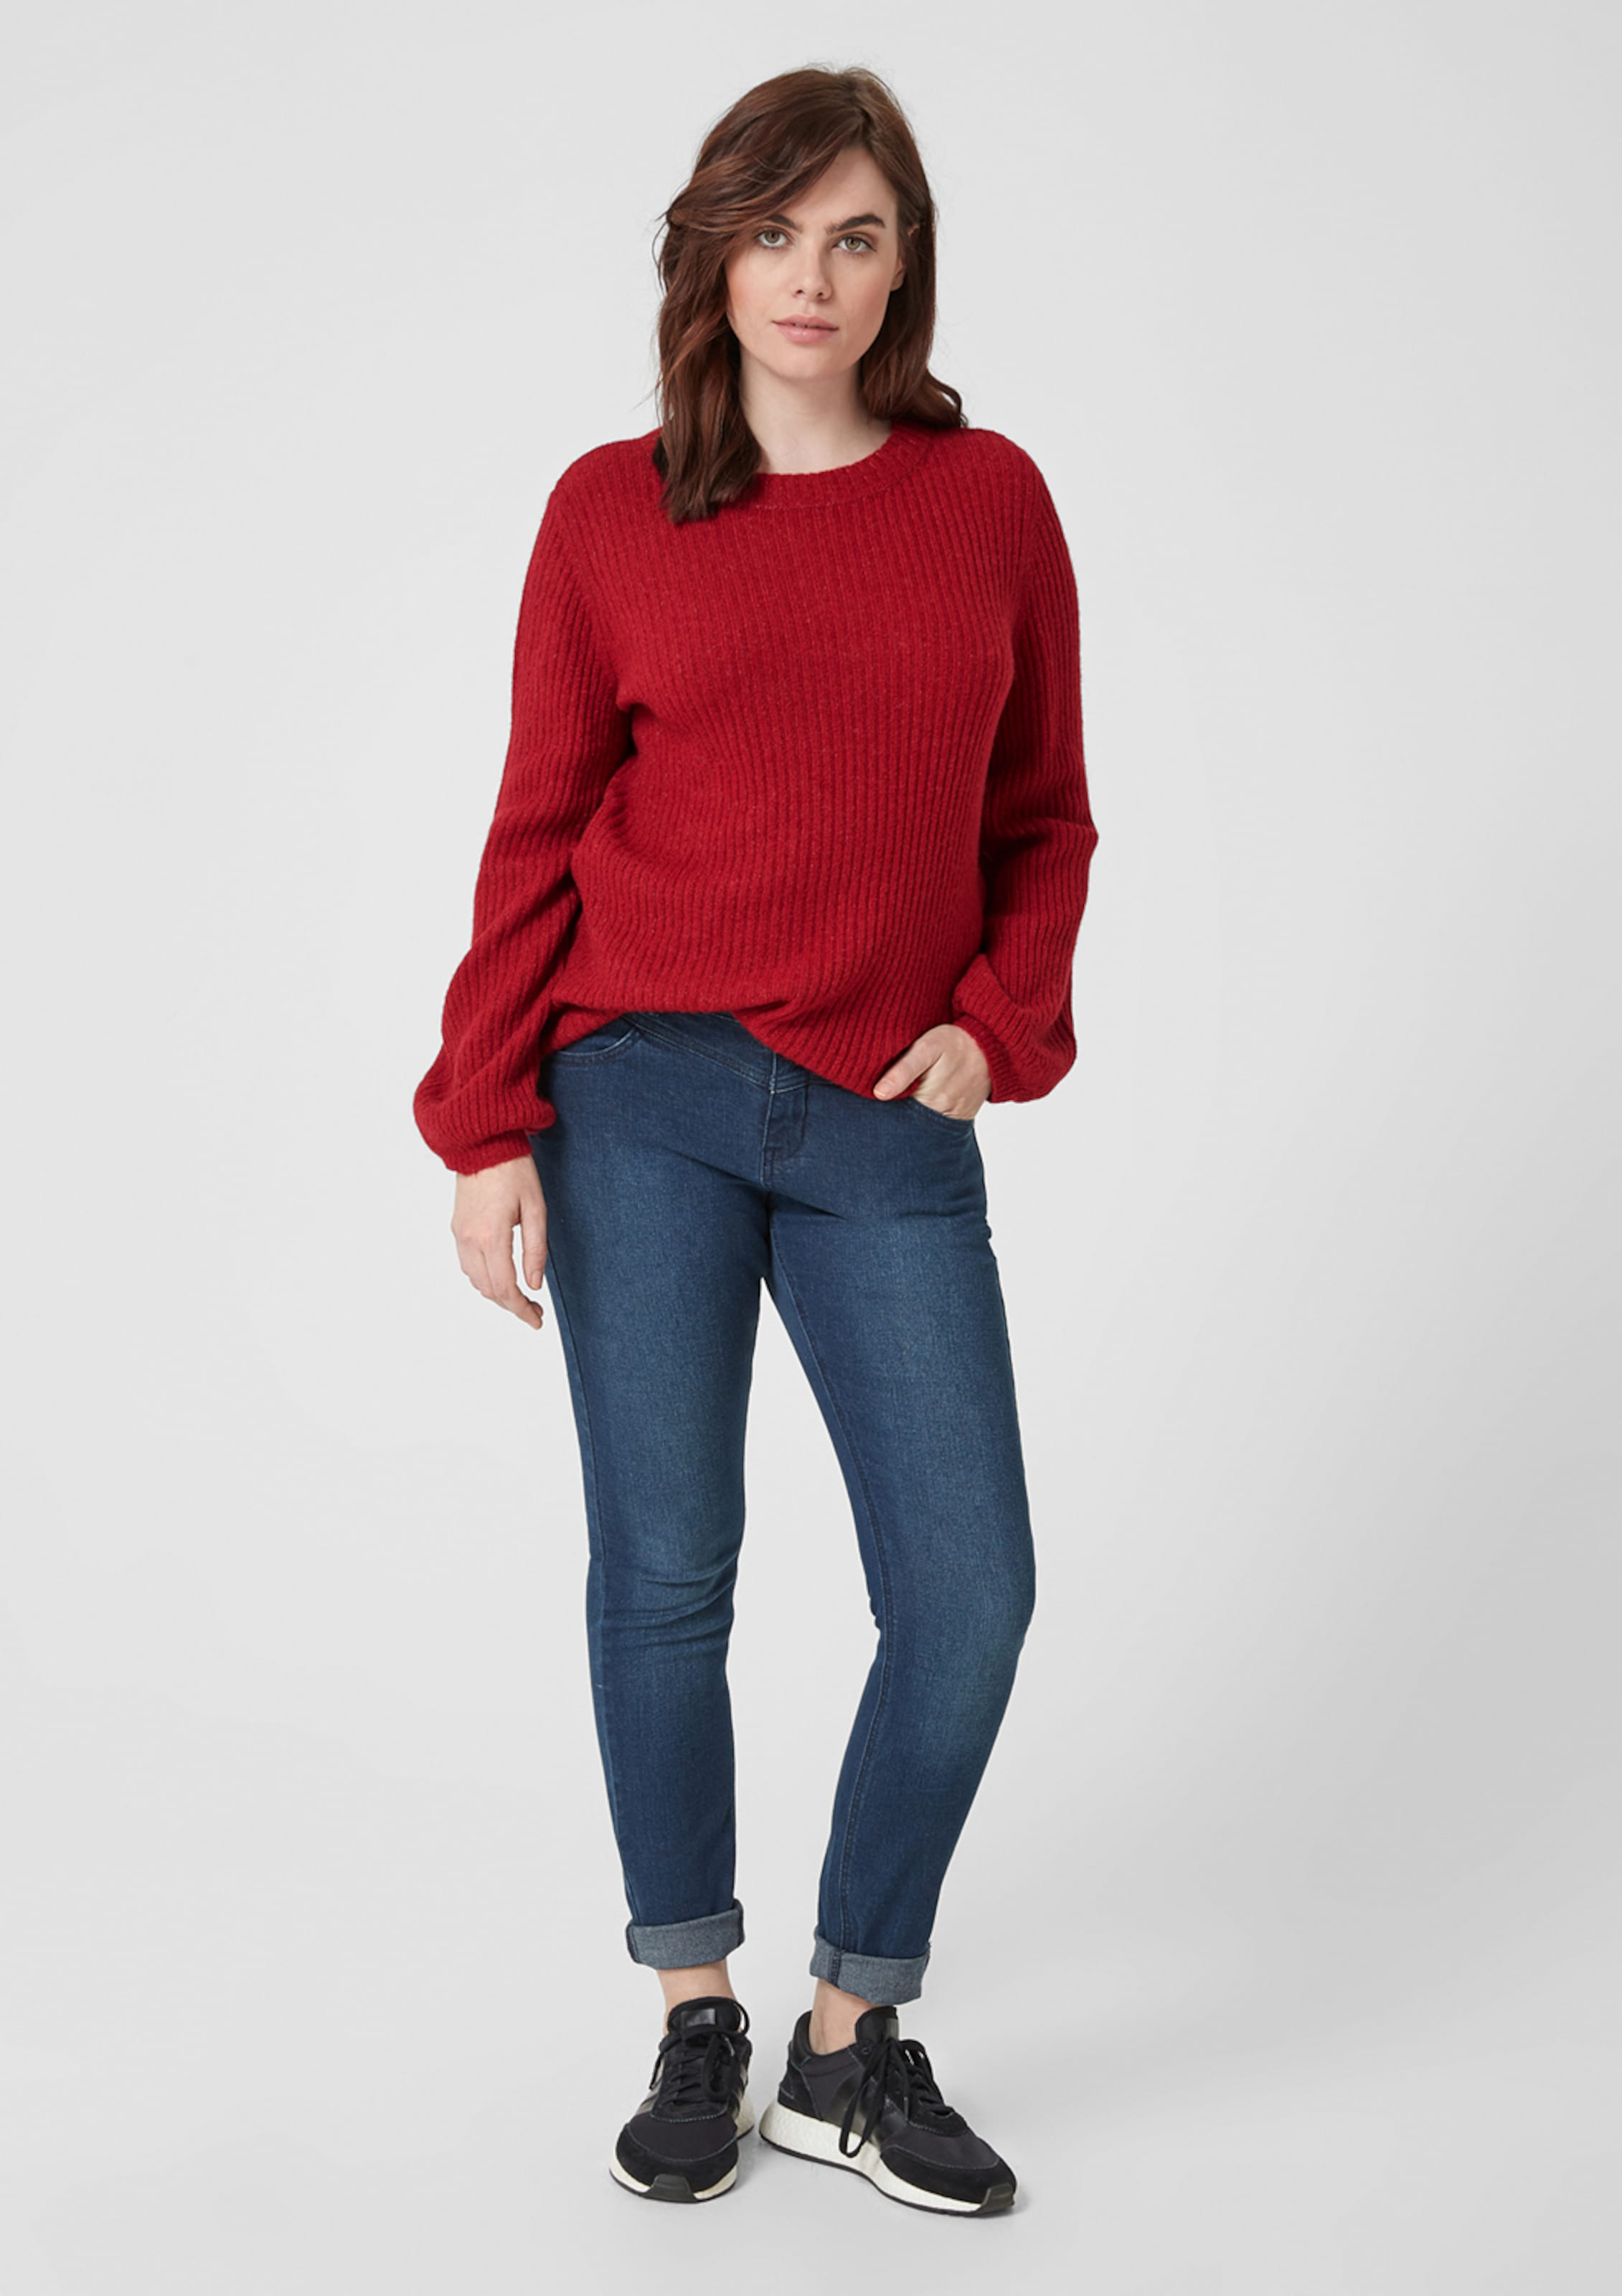 Pullover In Rot Pullover Rot Pullover Triangle Pullover In Rot In Triangle Triangle Triangle In 5Lj34RA